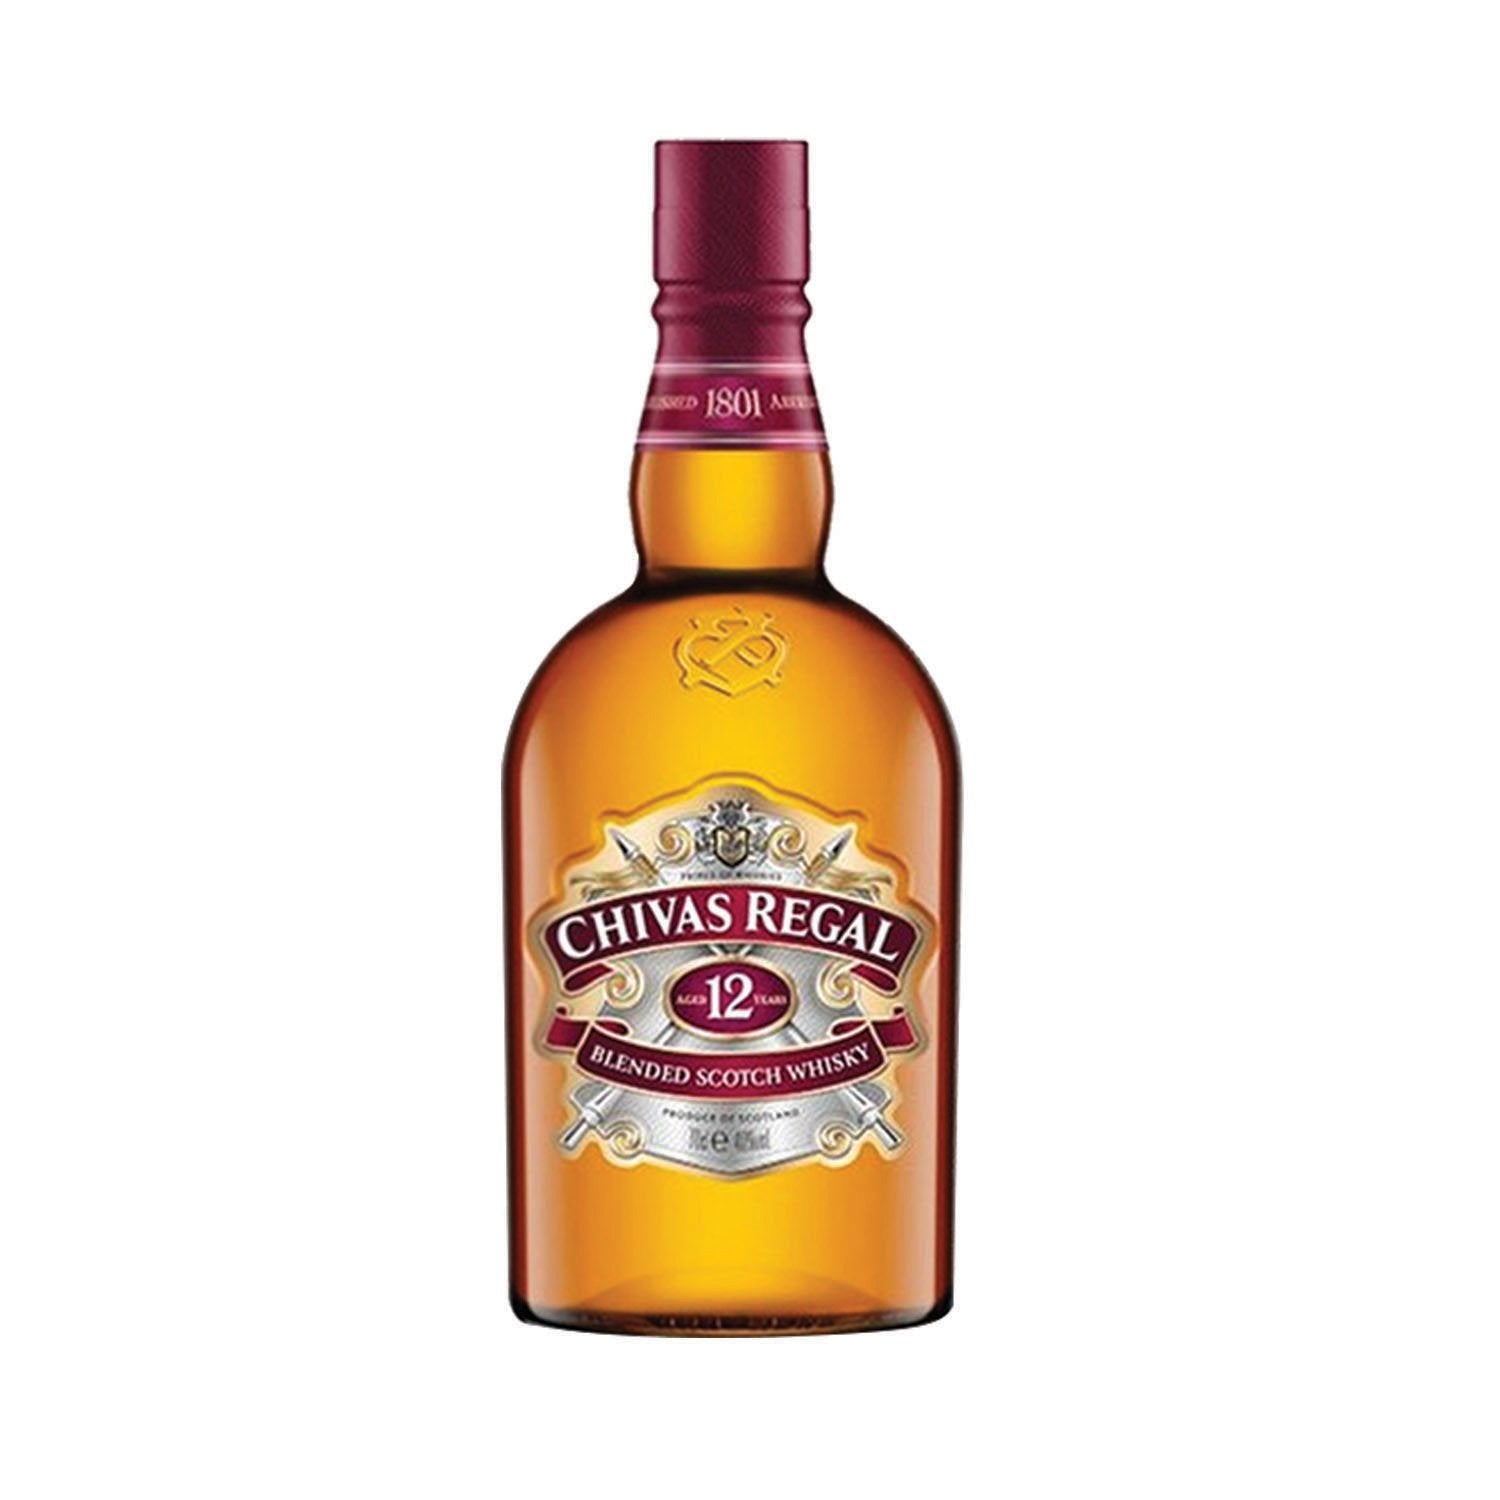 stm>Chivas Regal 12 Year Old Scotch Whisky 750ml